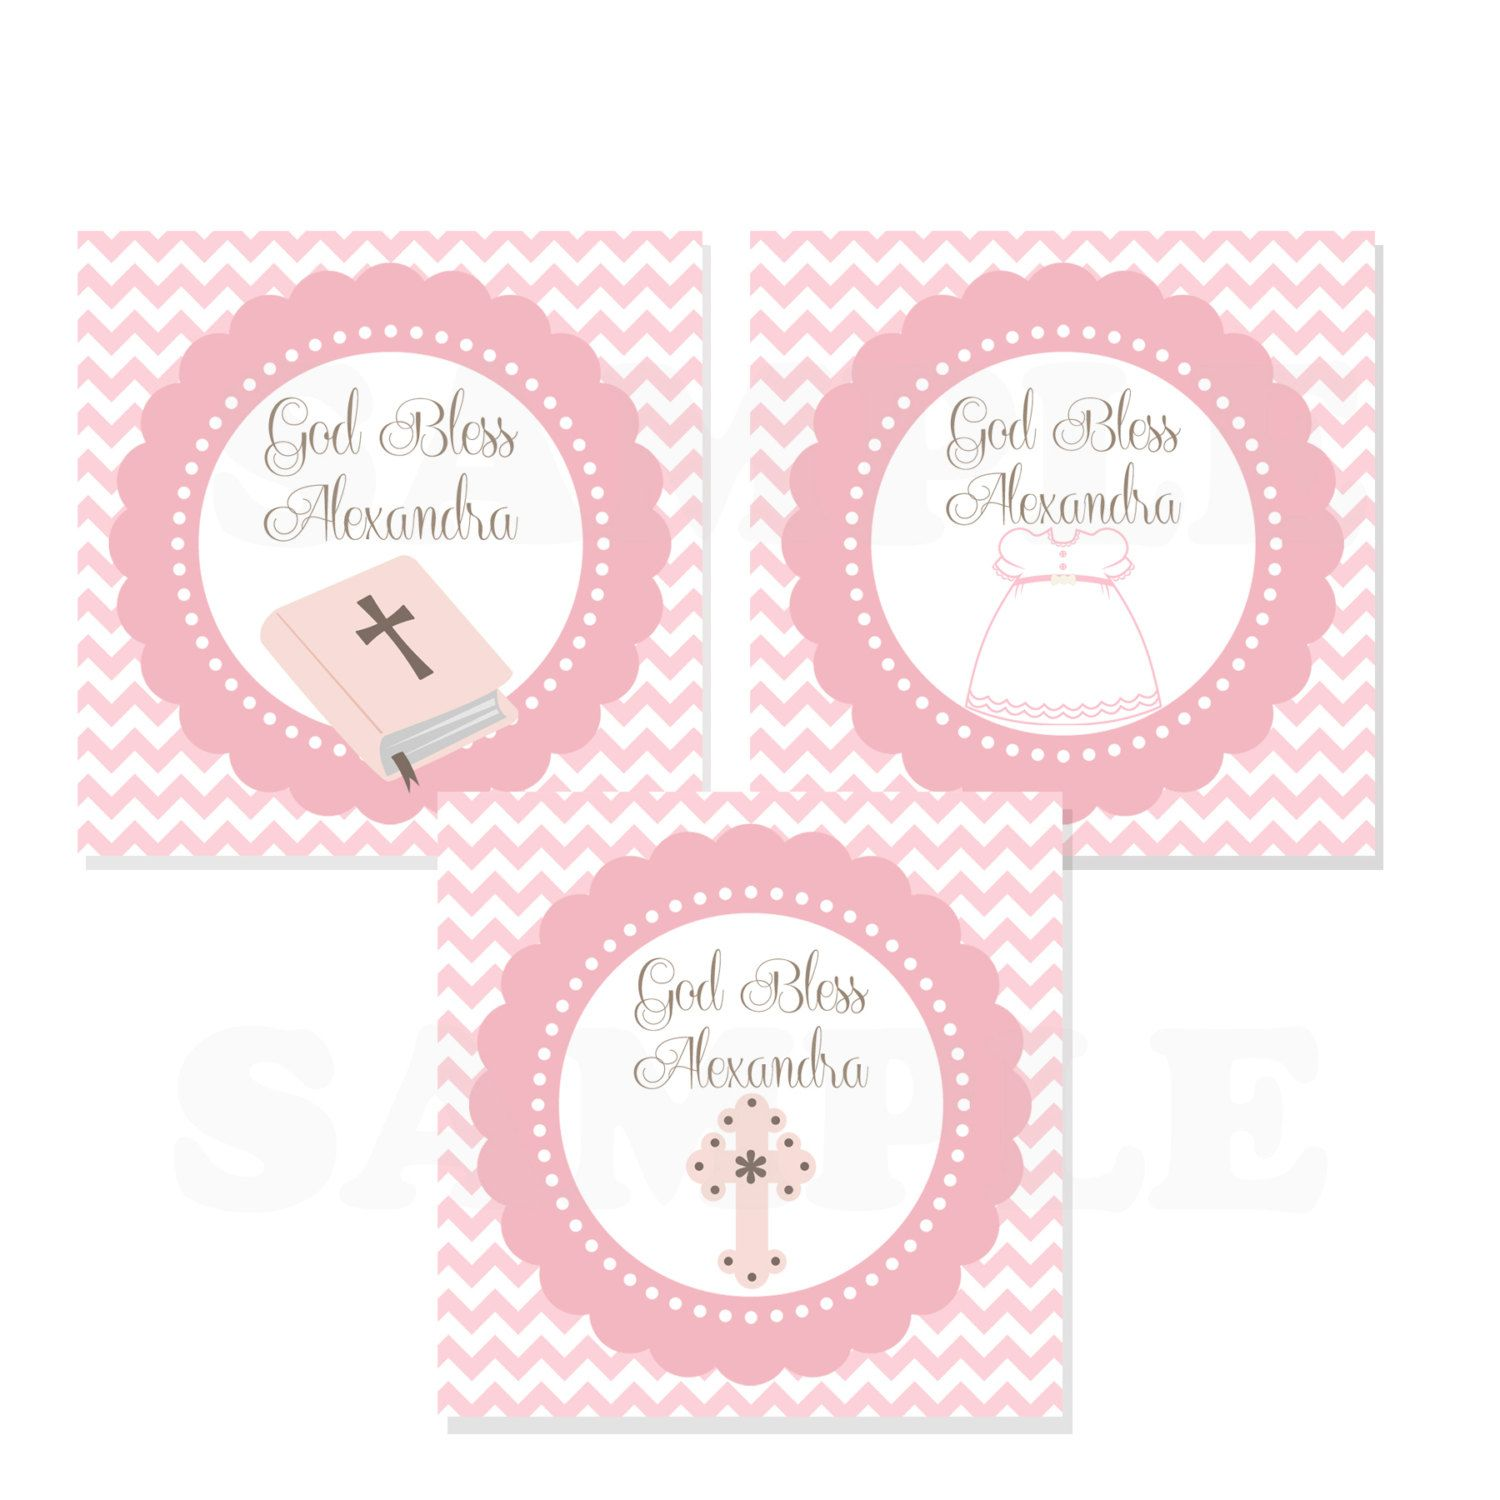 Personalized baby girl baptism christening favor tags printable personalized baby girl baptism christening by thelovelymemories 800 negle Gallery